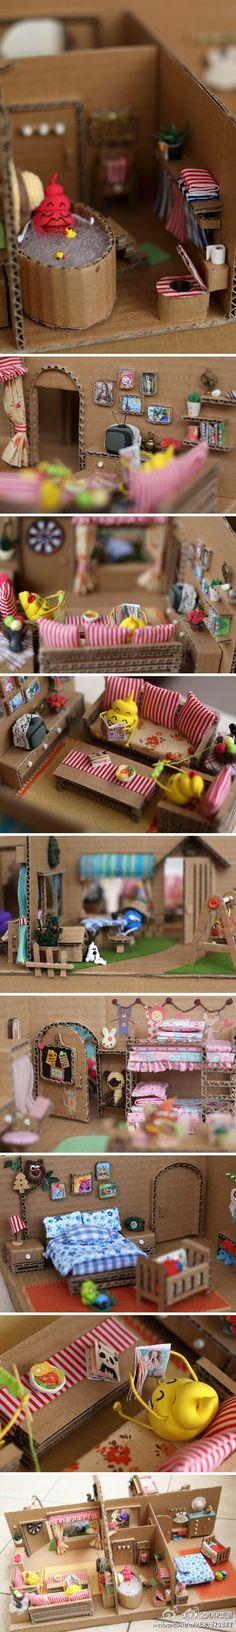 cute cardboard dollhouse!                                                                                                                                                      More